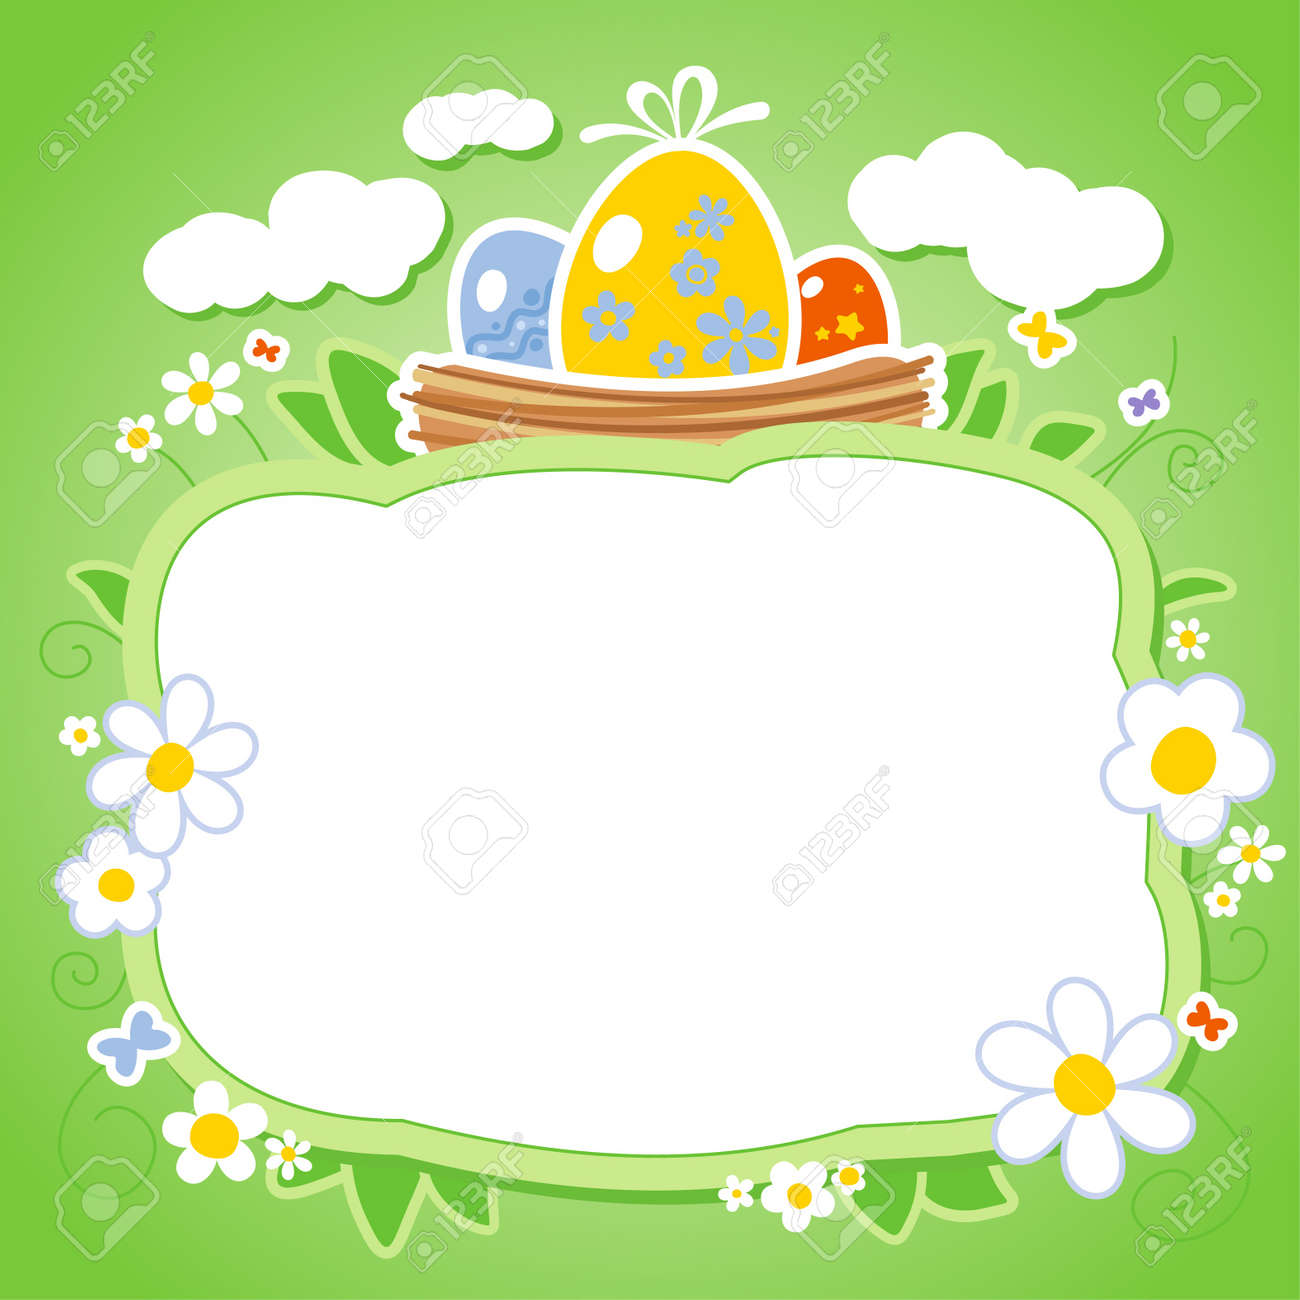 easter card template with frame for photo or text royalty free